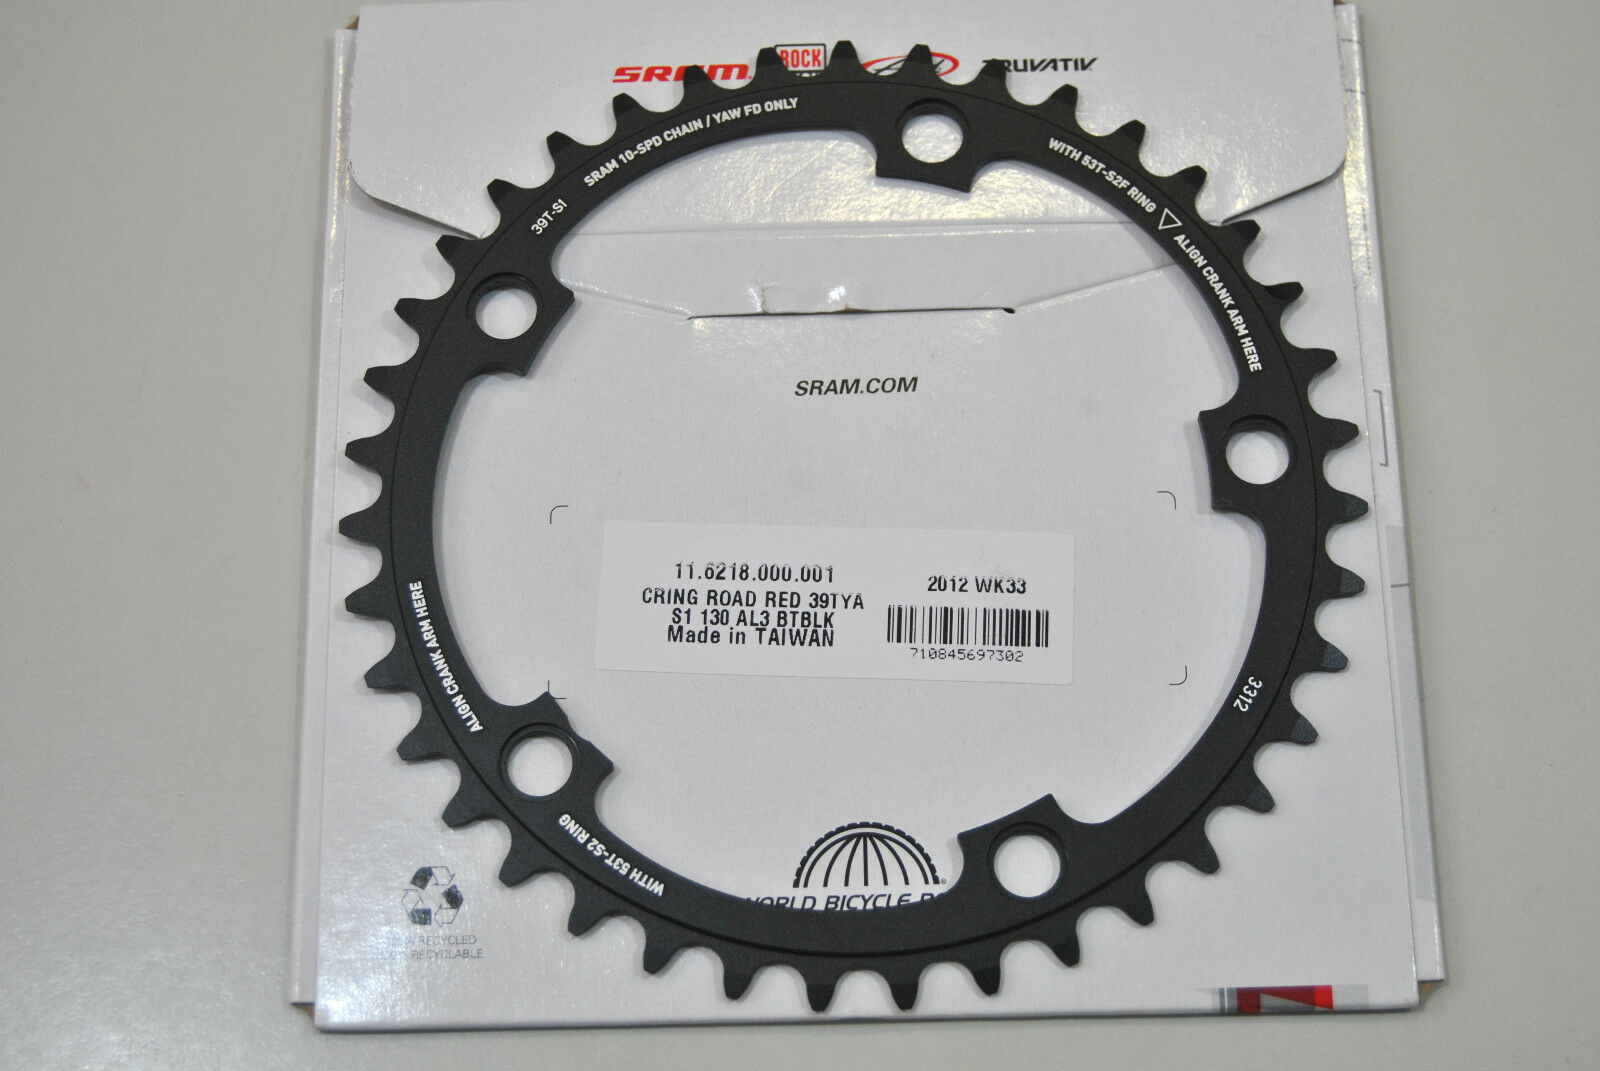 PLATEAU SRAM 39 Dents Sram Red BCD130mm black ( 53 39 ) Plateau SRAM RED 39T